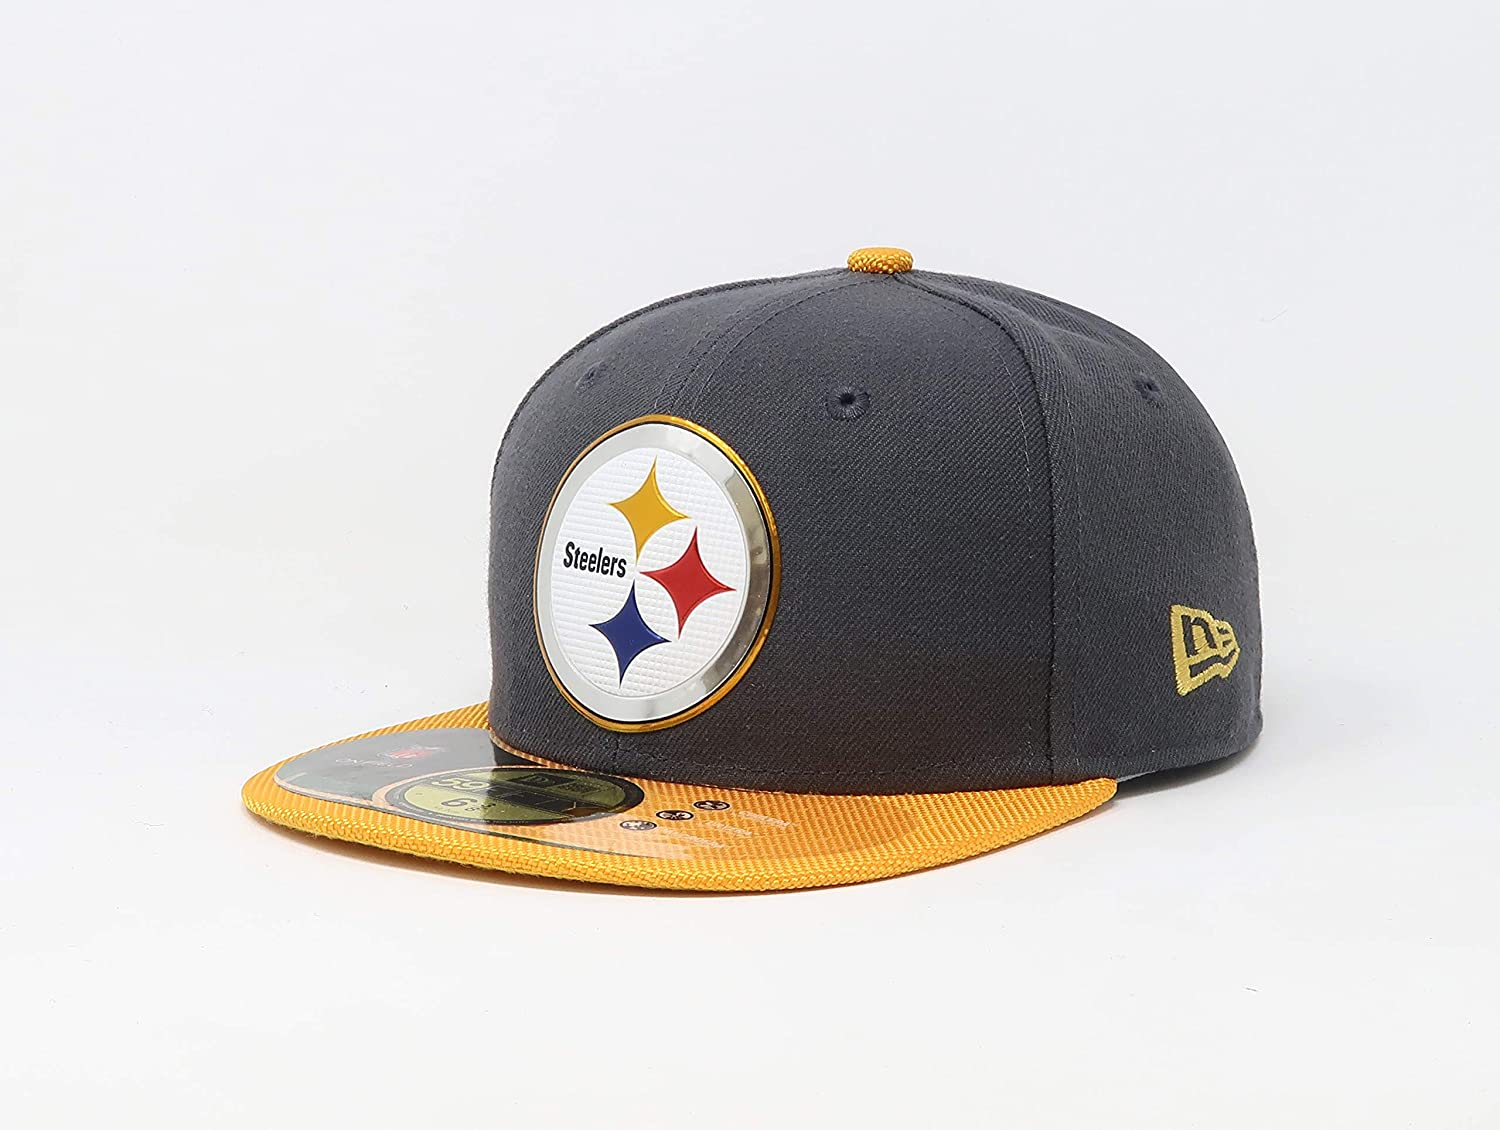 Toddler Hat Baby Hats Womens Hats Football Hat Pittsburgh Steelers Baby Steelers Hat Mens Hats Pittsburgh Steelers Steelers Baby